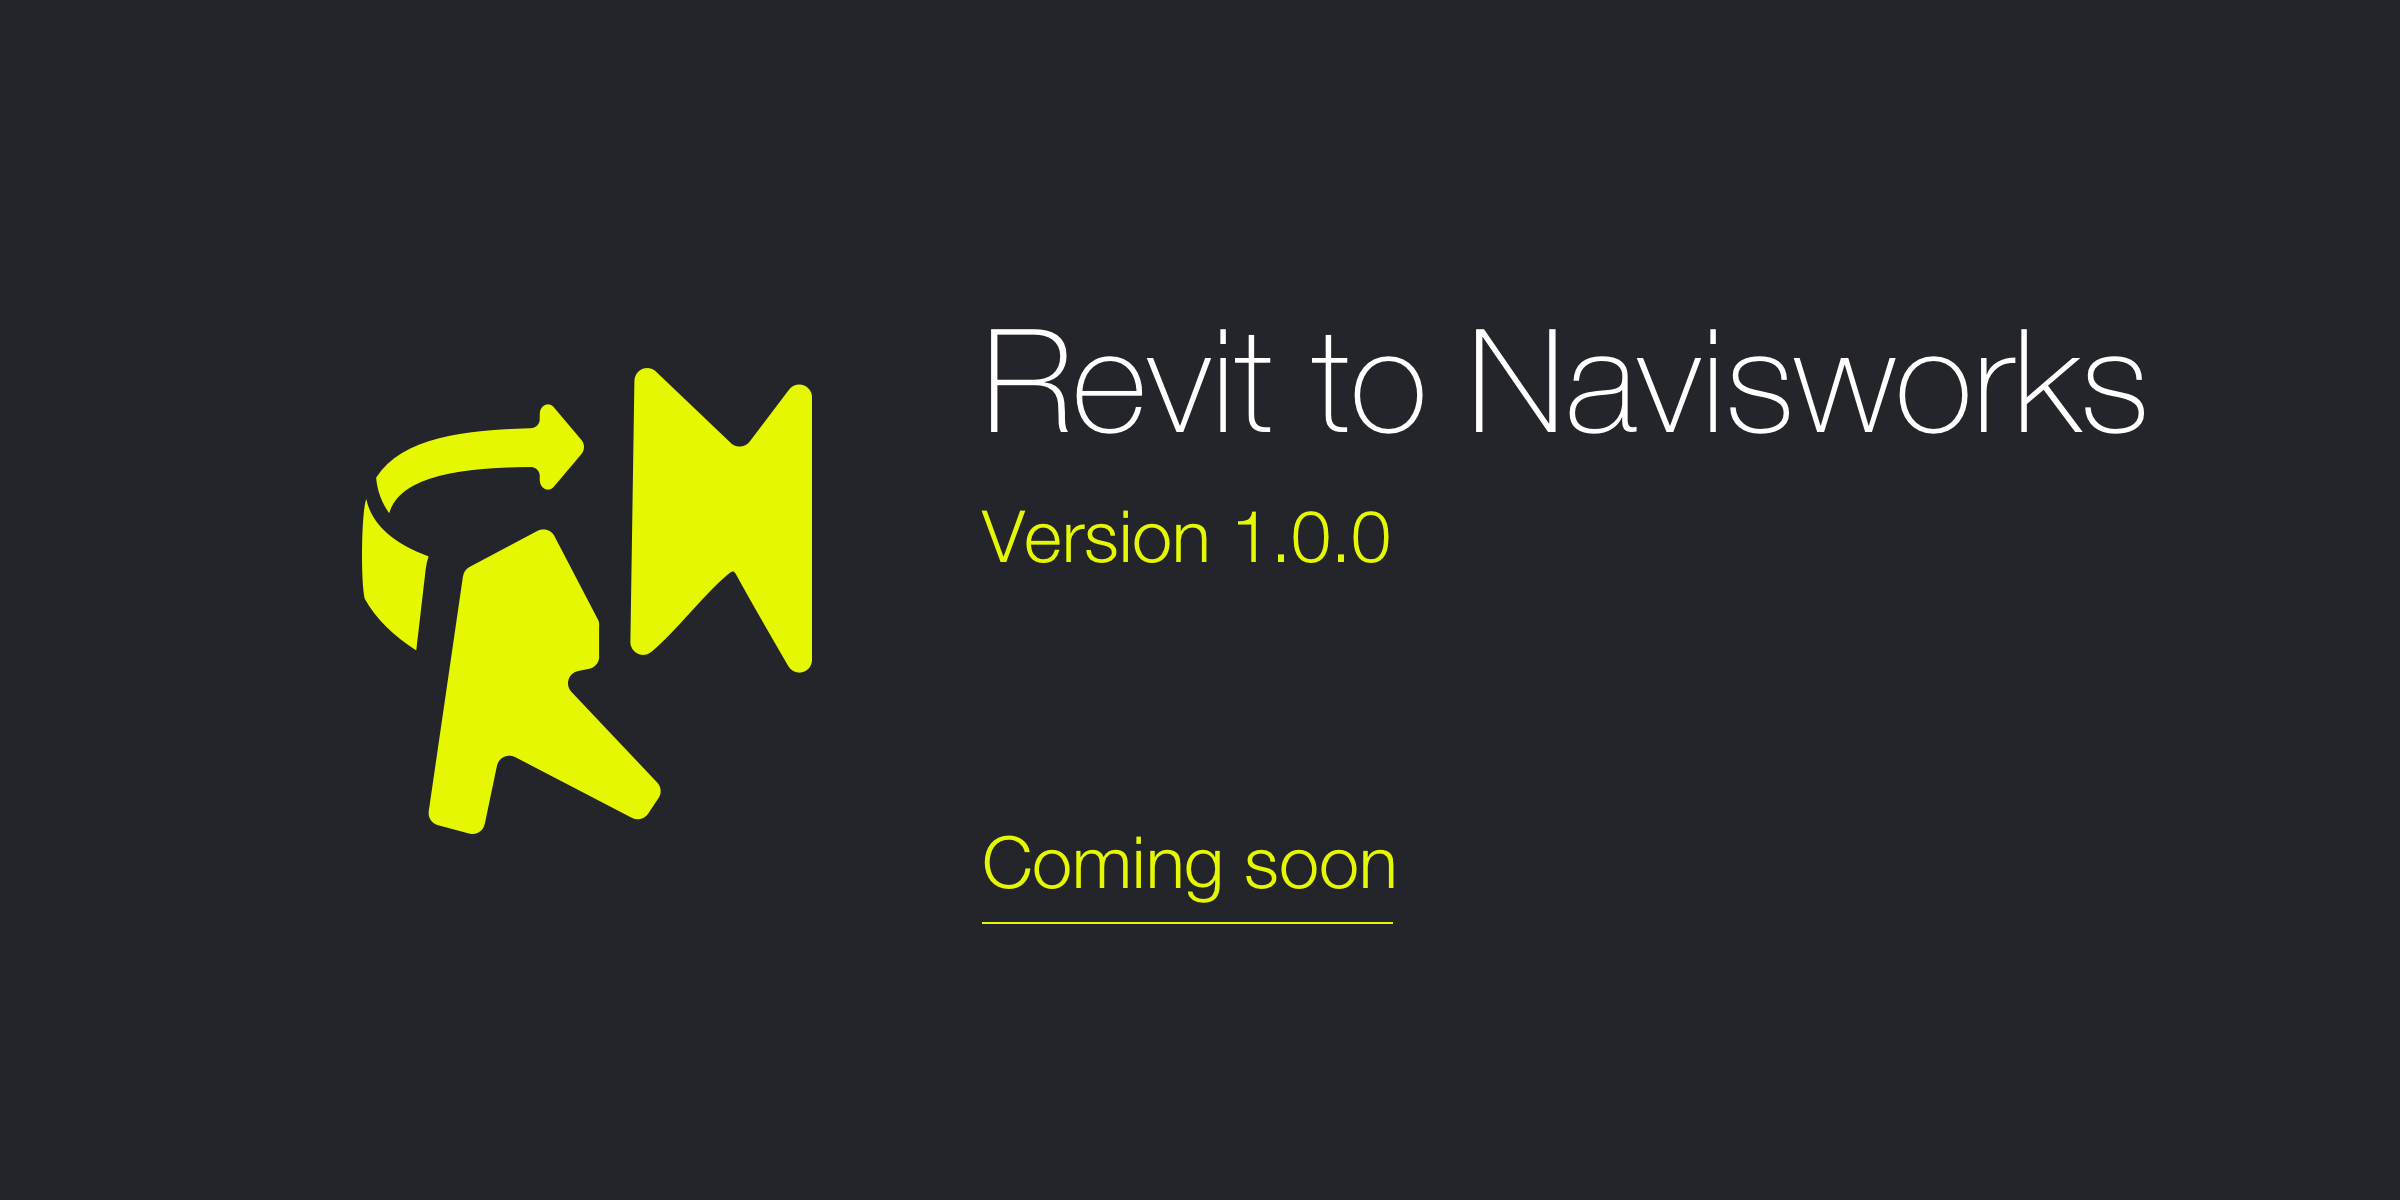 Revit to Navisworks